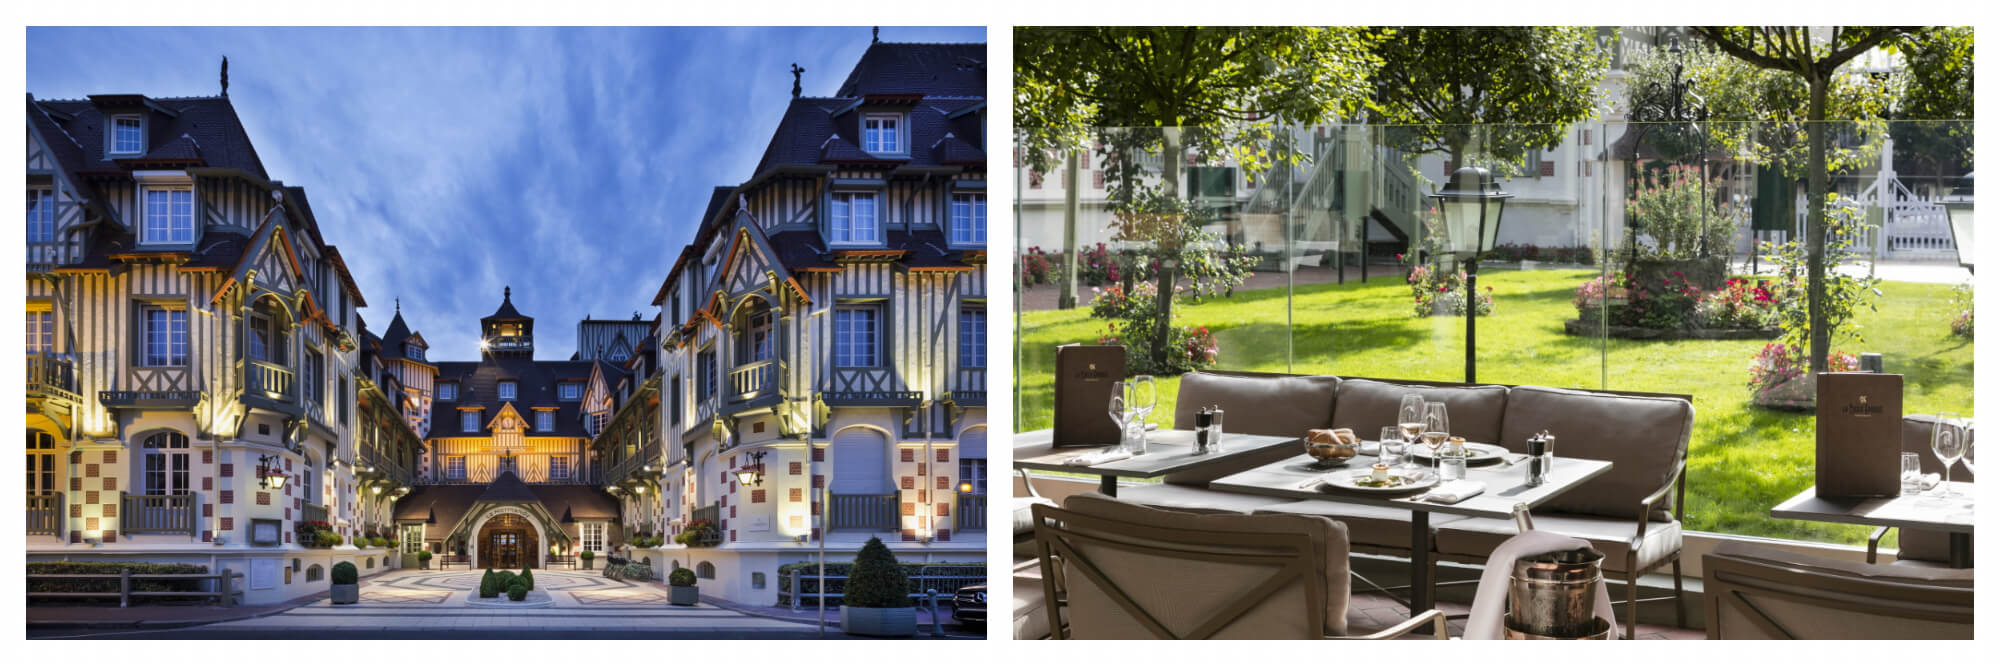 On left: The grand Normand facade of Le Normandy, Deauville's glamorous hotel, has welcomed visitors such as Winston Churchill and Coco Chanel during the course of its history. On right: the Belle Époque restaurant of the storied Deauville hotel, Le Normandy, awaits diners in the sunshine.